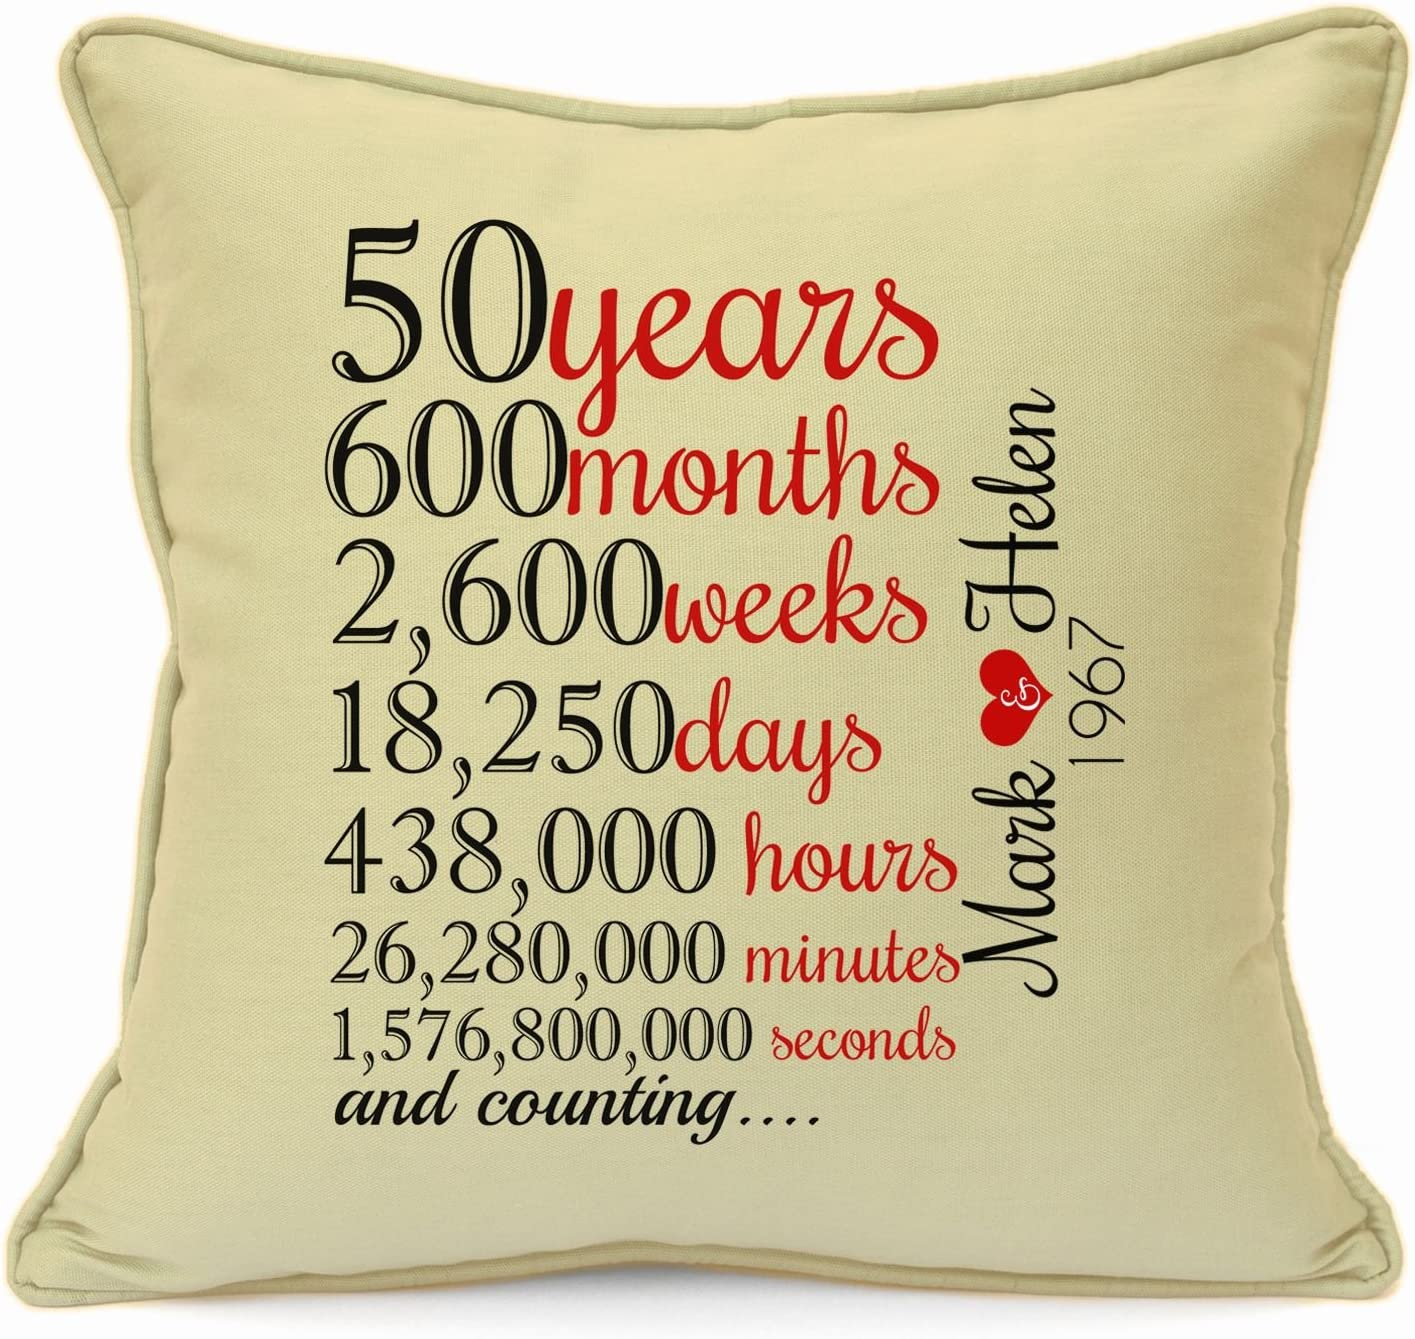 Personalised Presents Gifts For Him Her Husband Wife Girlfriend Boyfriend Wedding Anniversary Birthday Valentines Day Christmas Xmas Love 50 Years Count Cushion Cover 18 Inch 45 Cm Home Decor Amazon Co Uk Kitchen